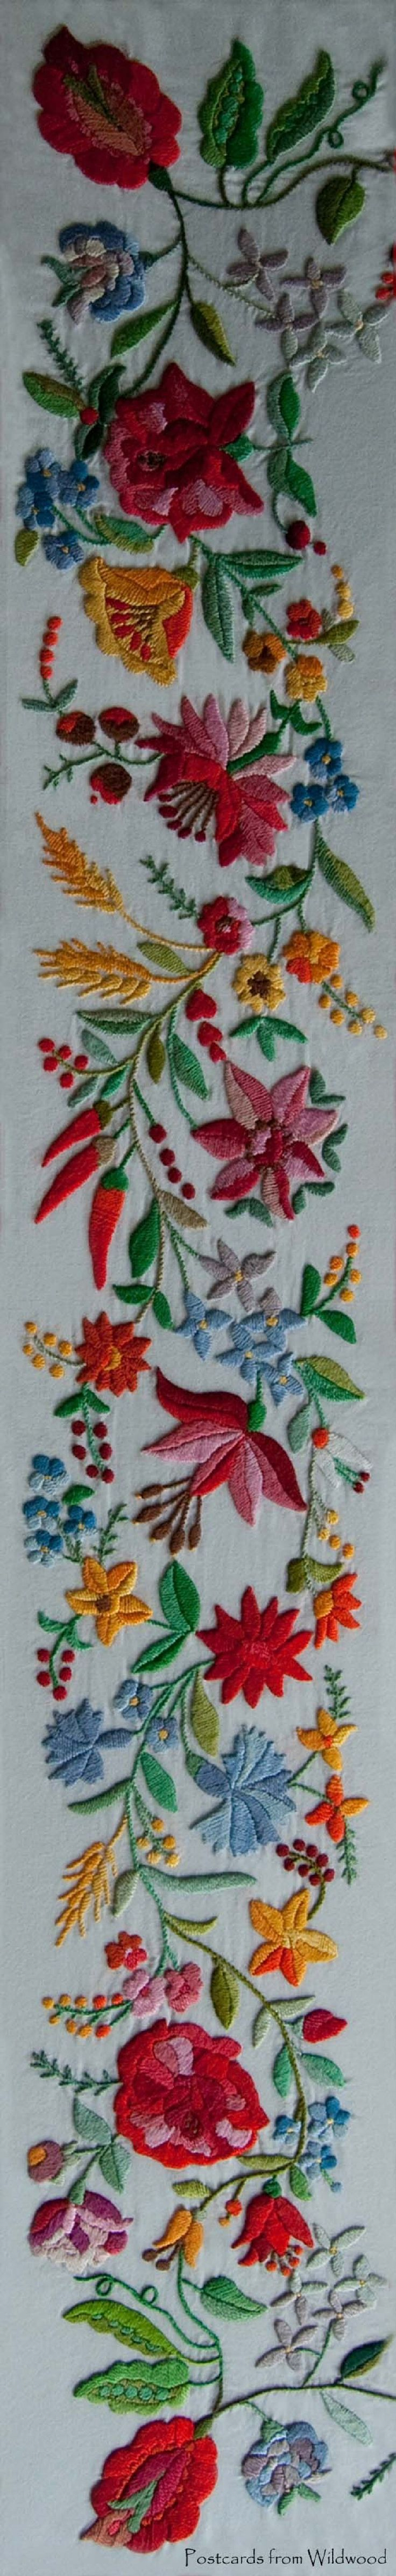 I ❤ embroidery . . . Hungarian Kalocsai embroidery.